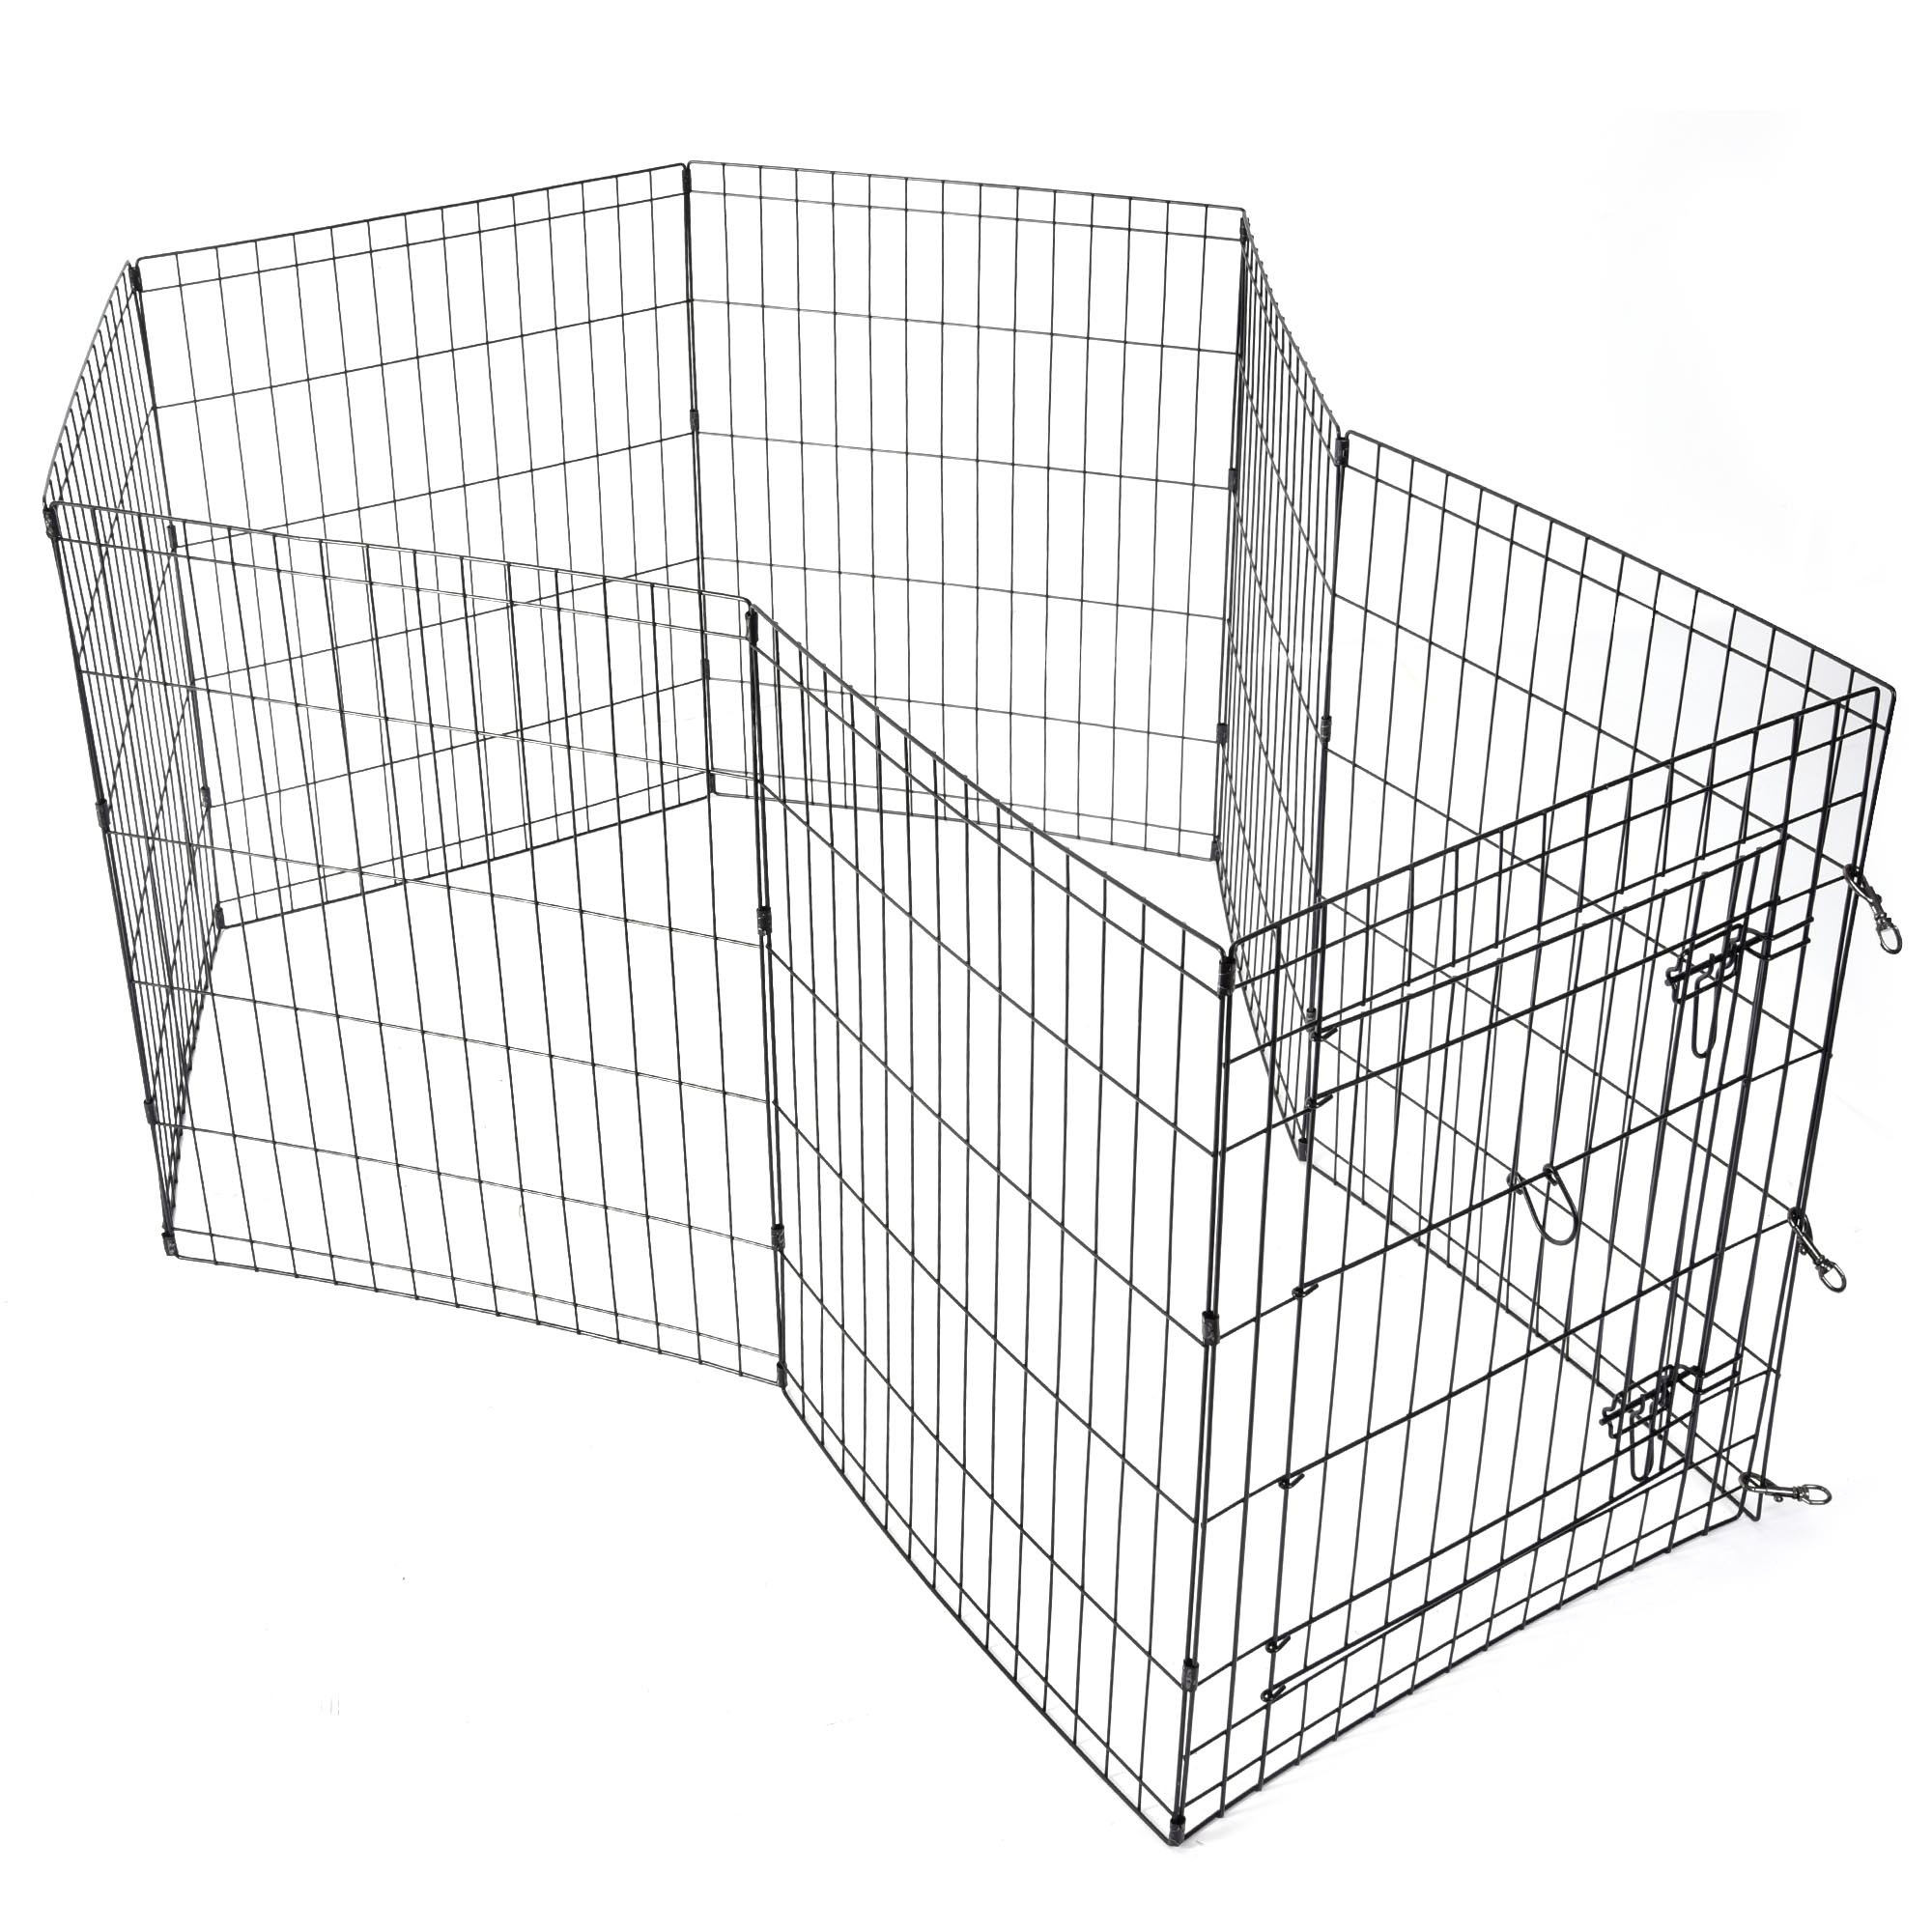 24-30-36-42-48-Dog-Pet-Playpen-Metal-Crate-Fence-Cage-8-Panel-Exercise-Play-Pen thumbnail 15